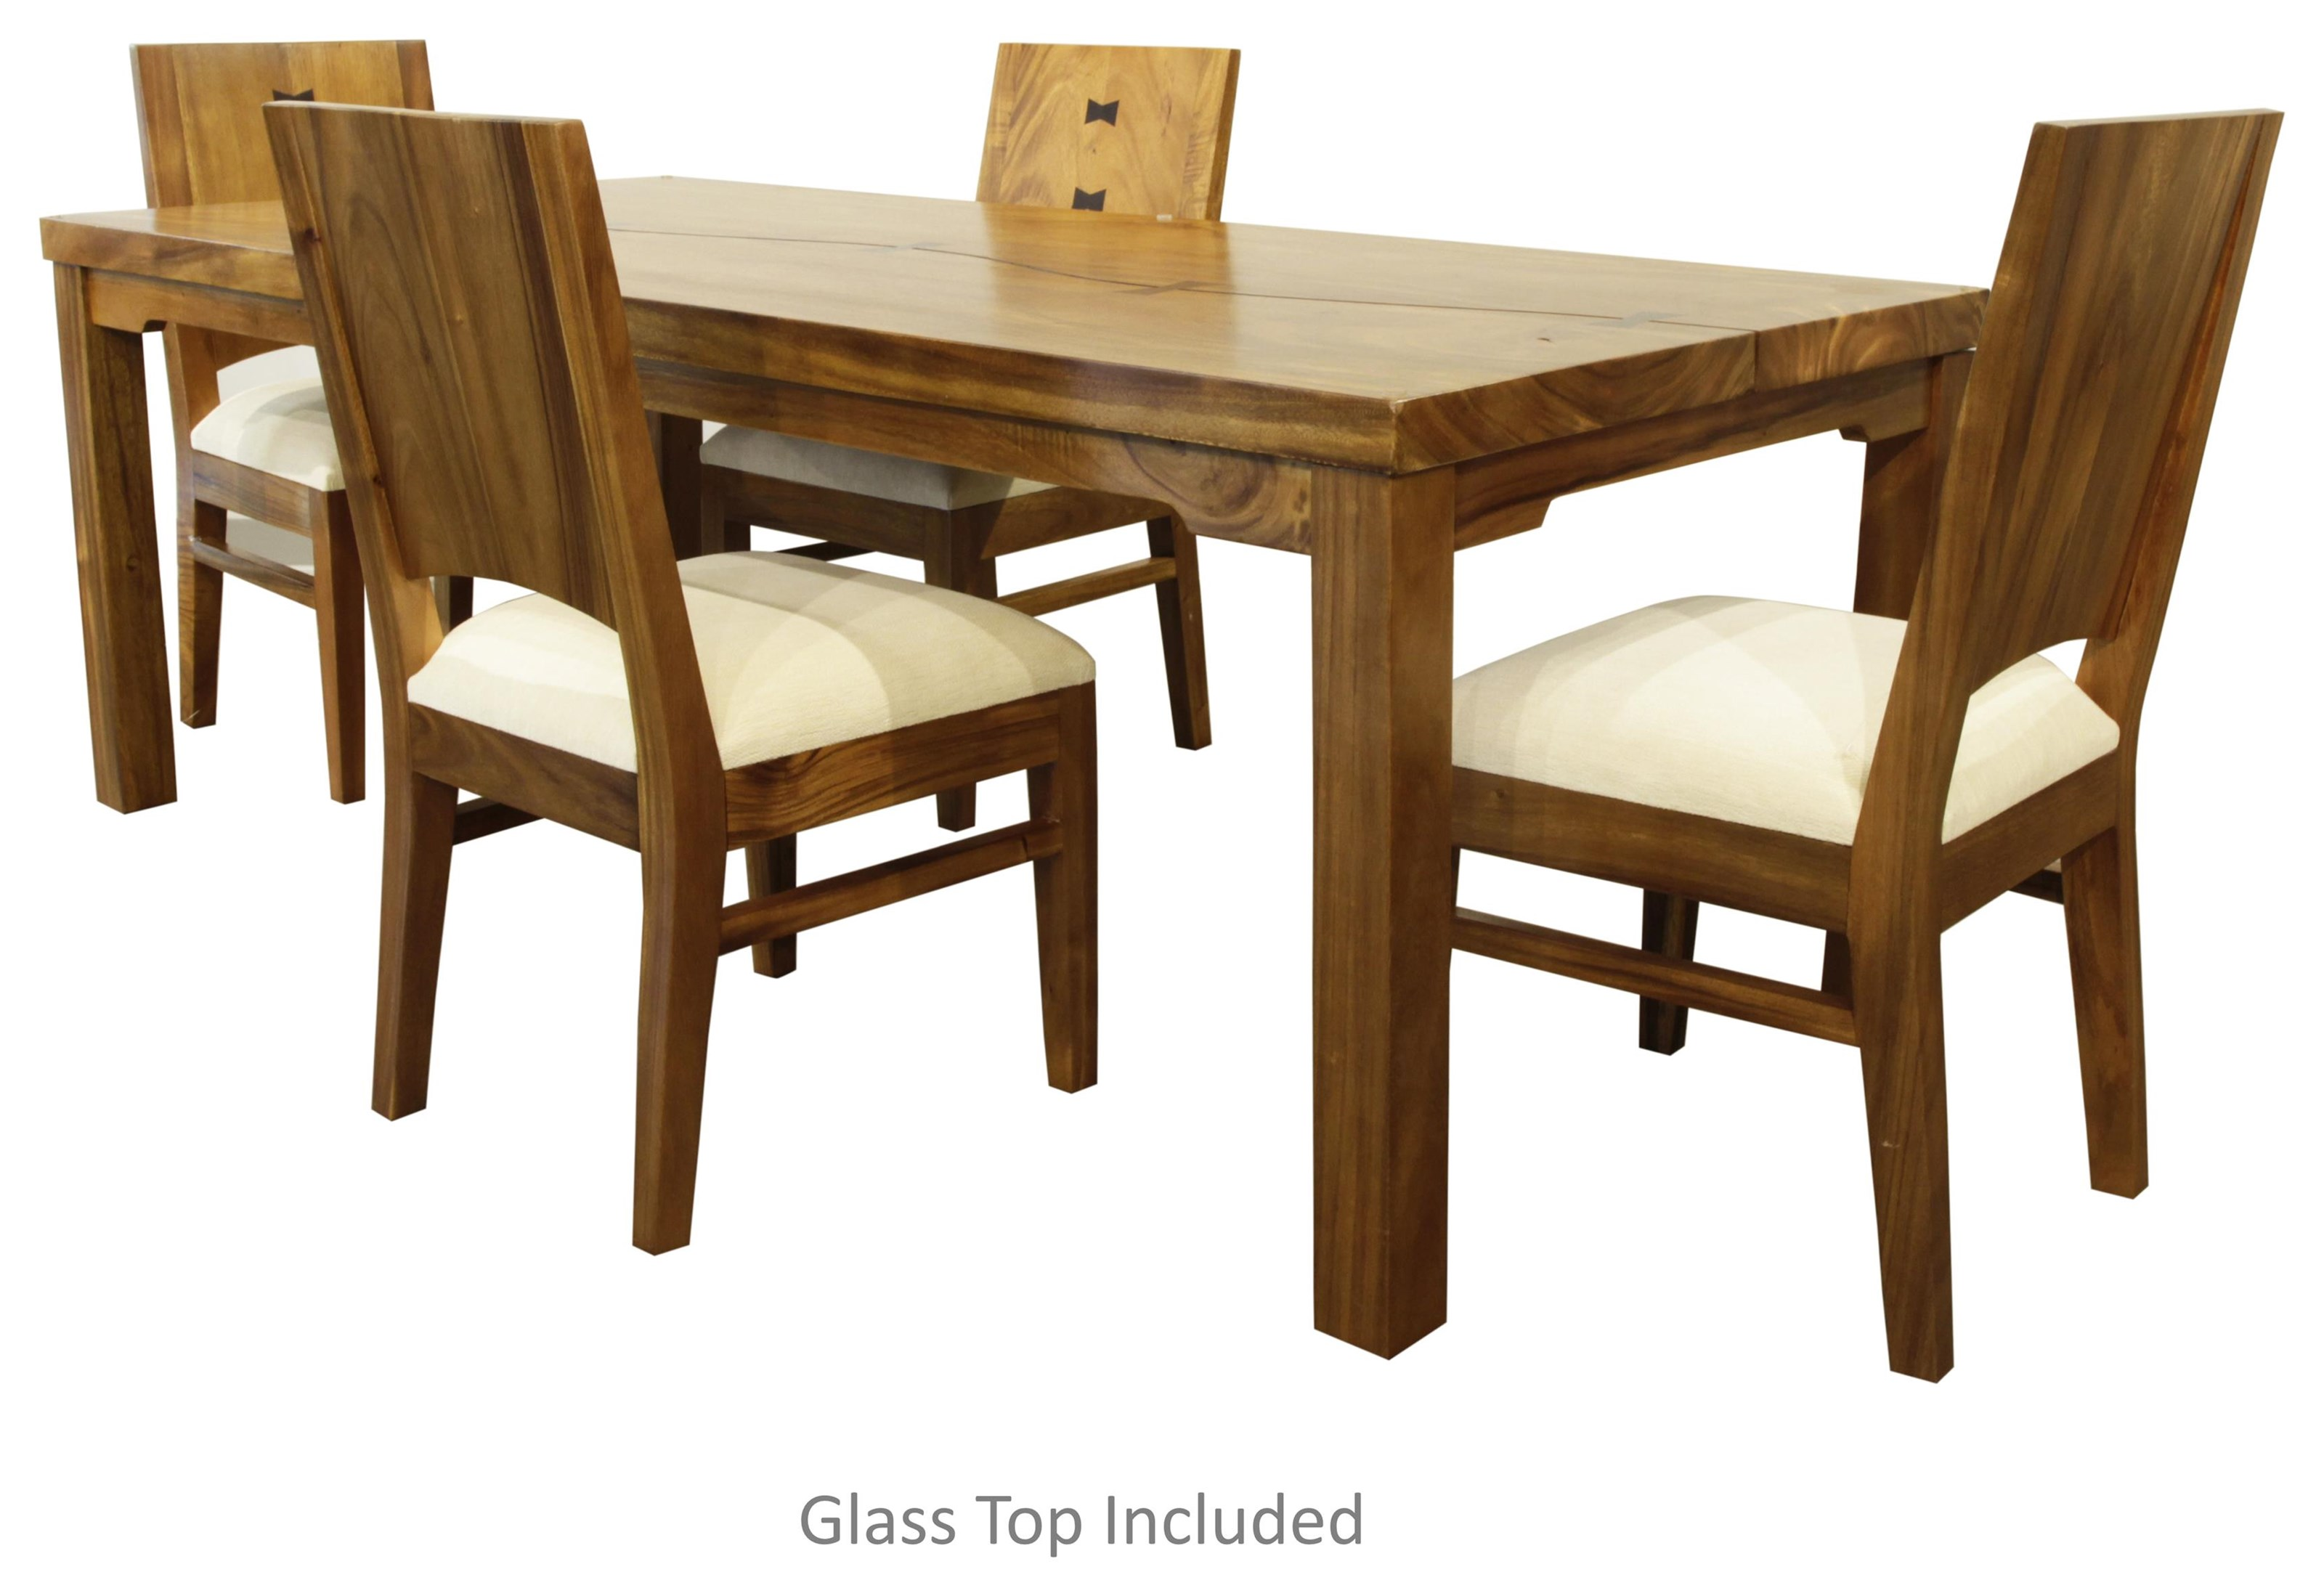 Napili 5 Piece Dining Set by Jamieson Import Services, Inc. at HomeWorld Furniture